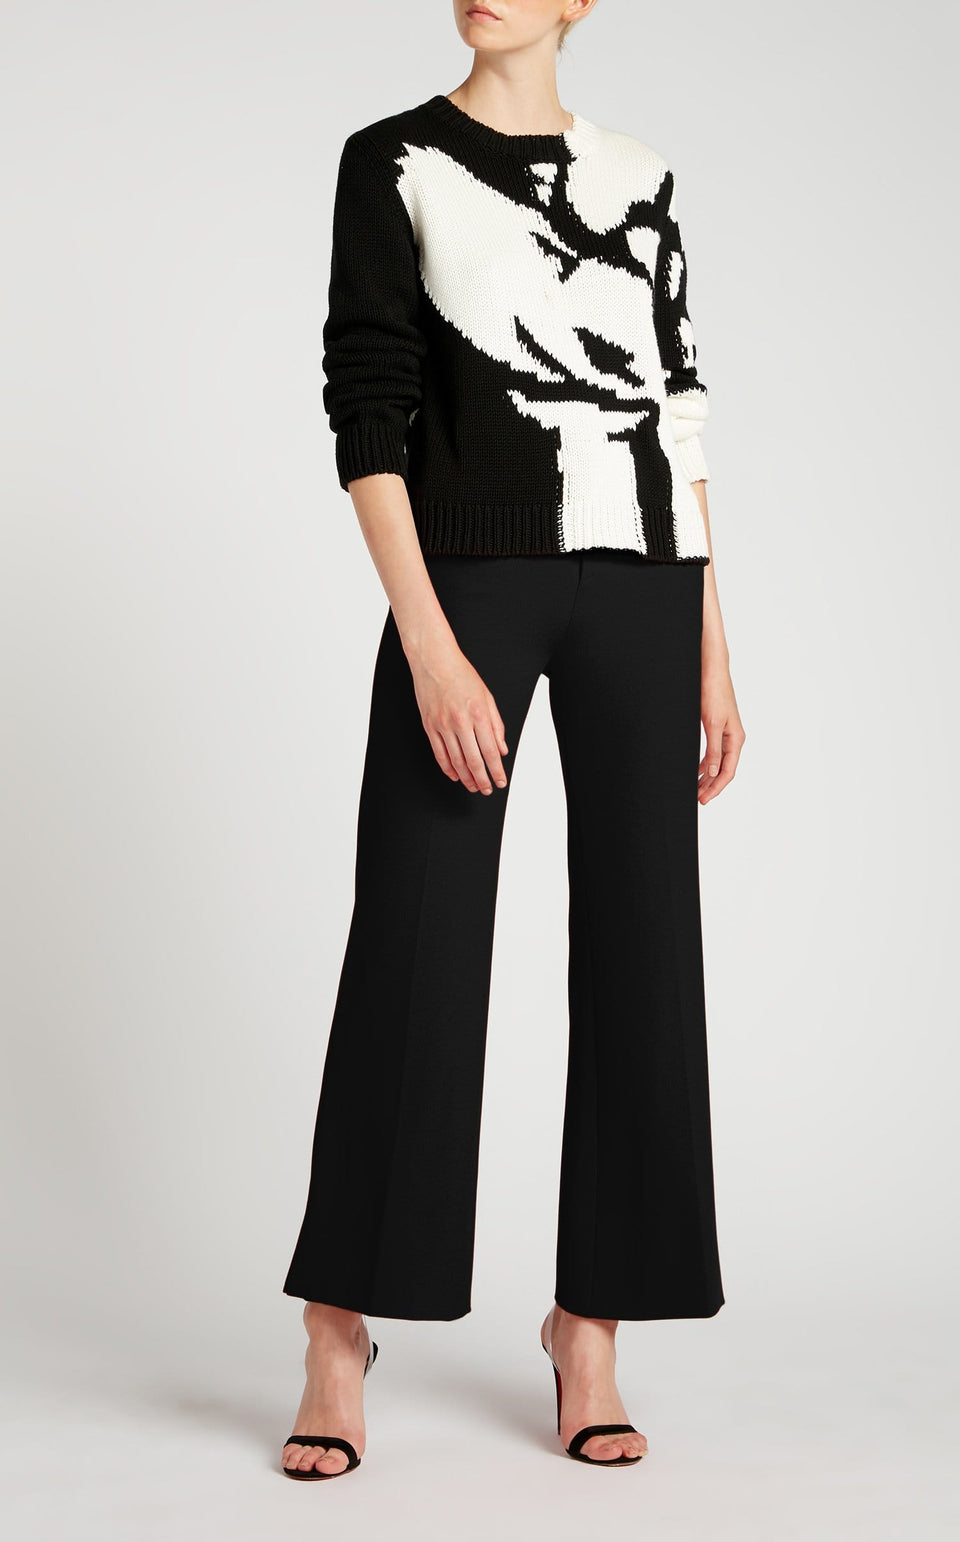 Dilman Trouser In Black from Roland Mouret